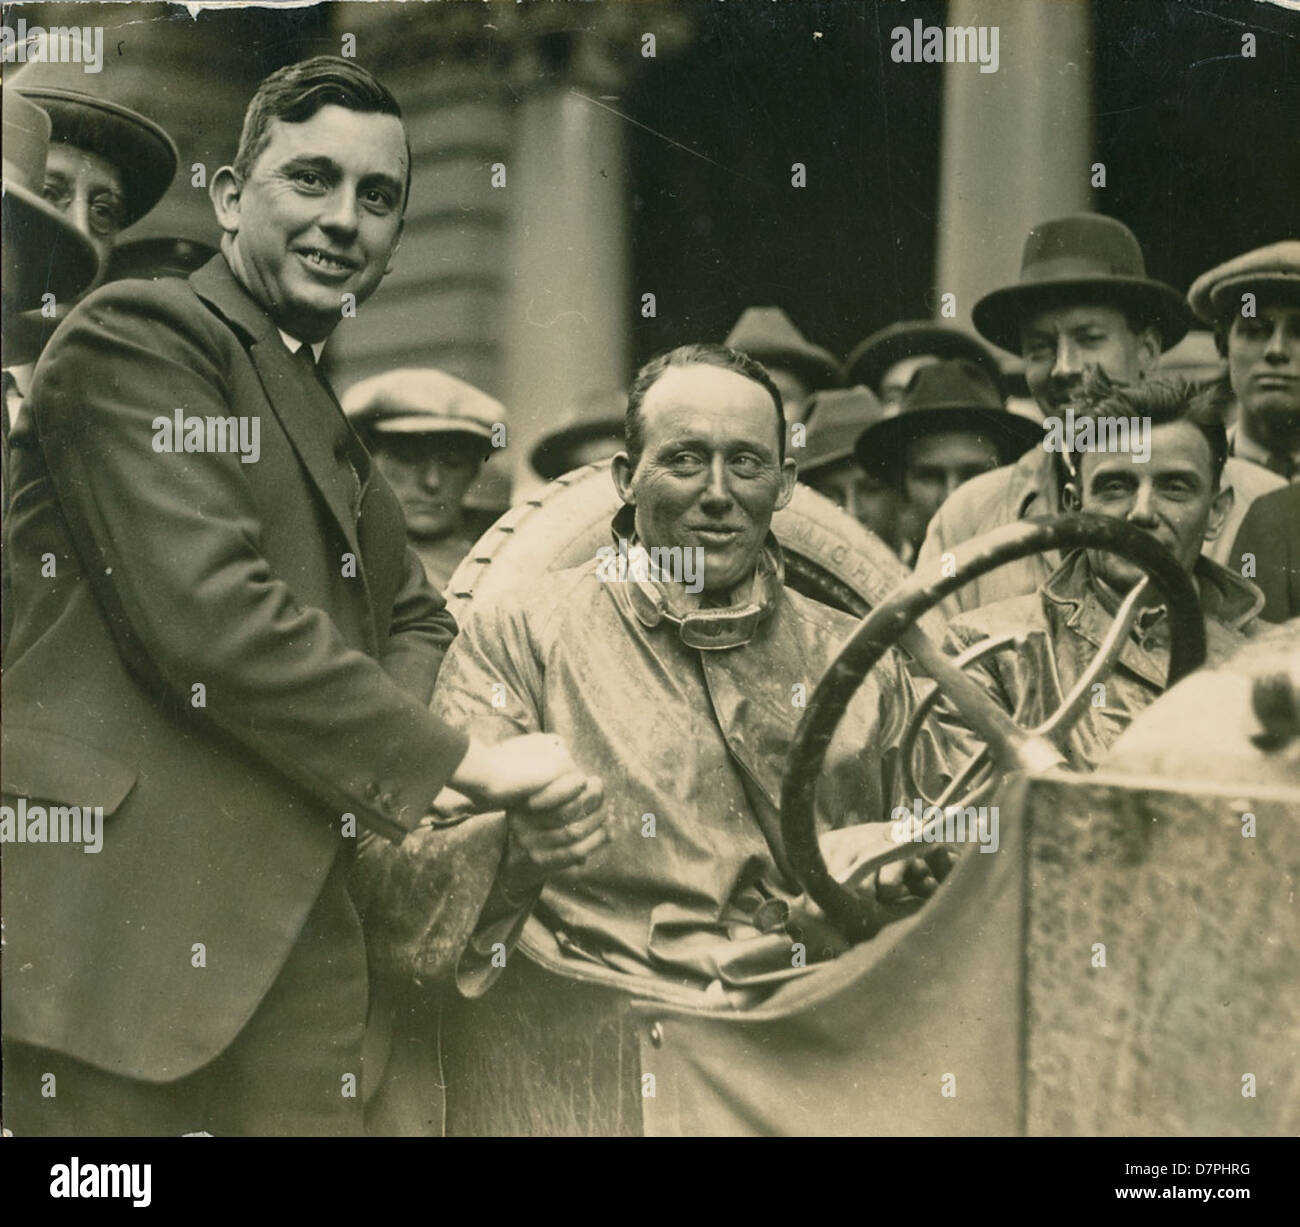 Dave Carrigan at wheel of a Willys Knight car, 1926 - Stock Image